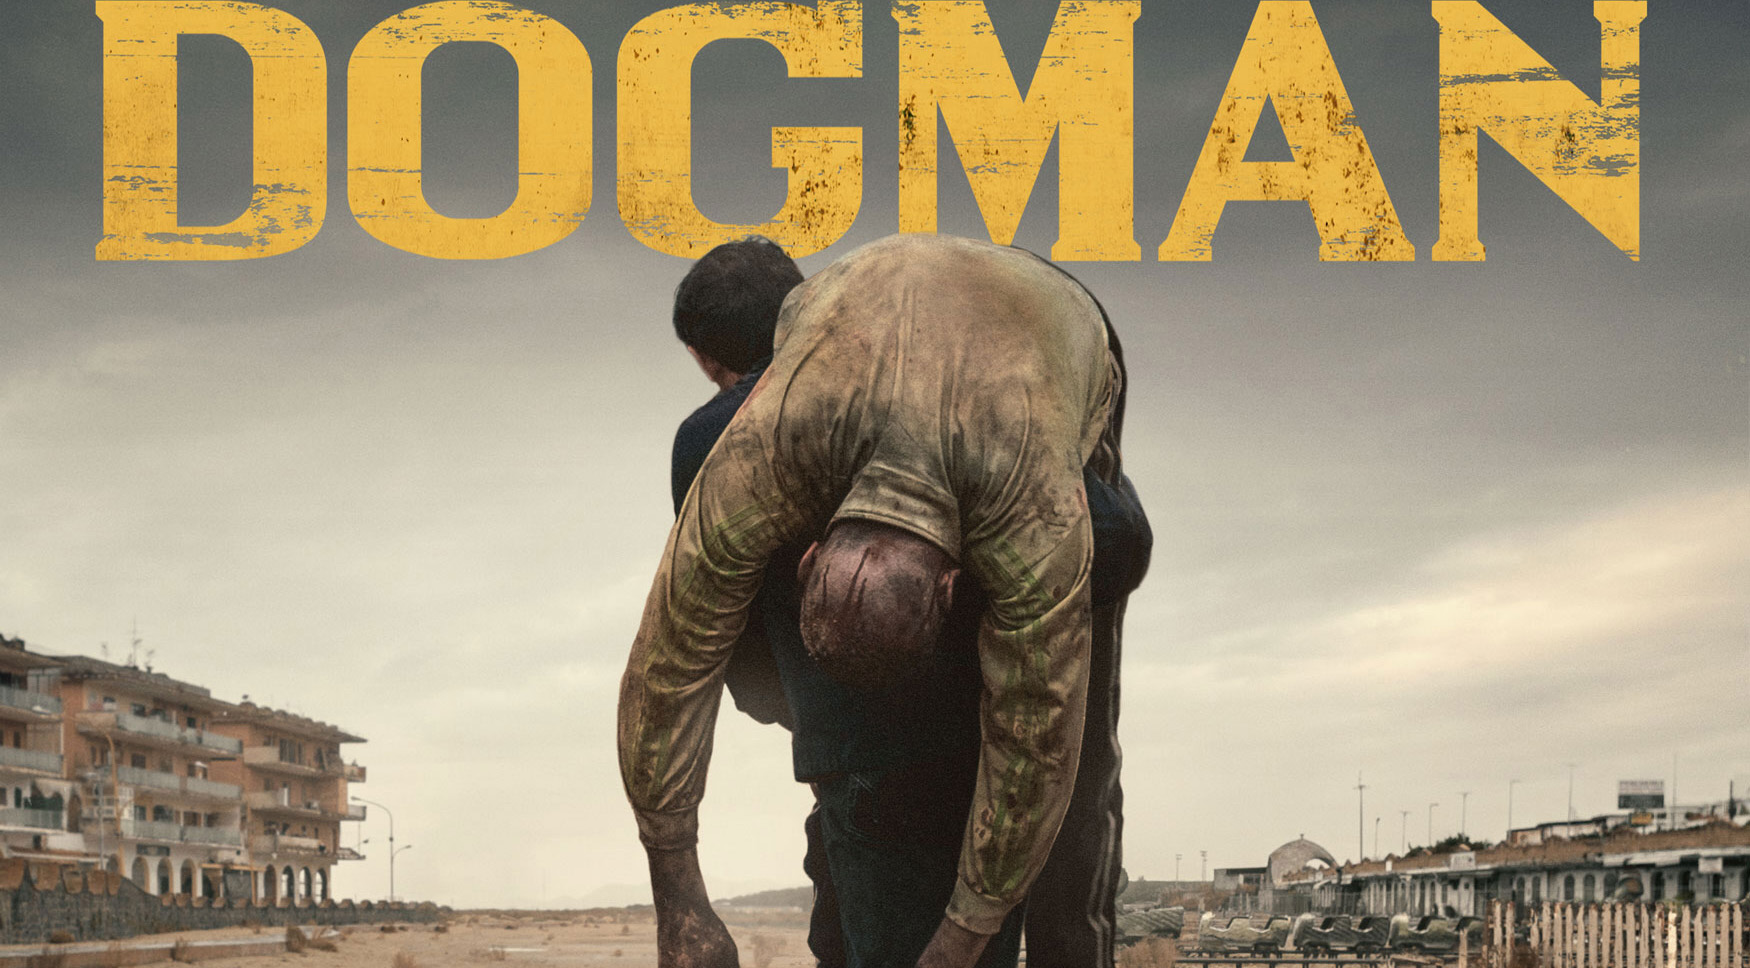 Dogman article cultural hater poster